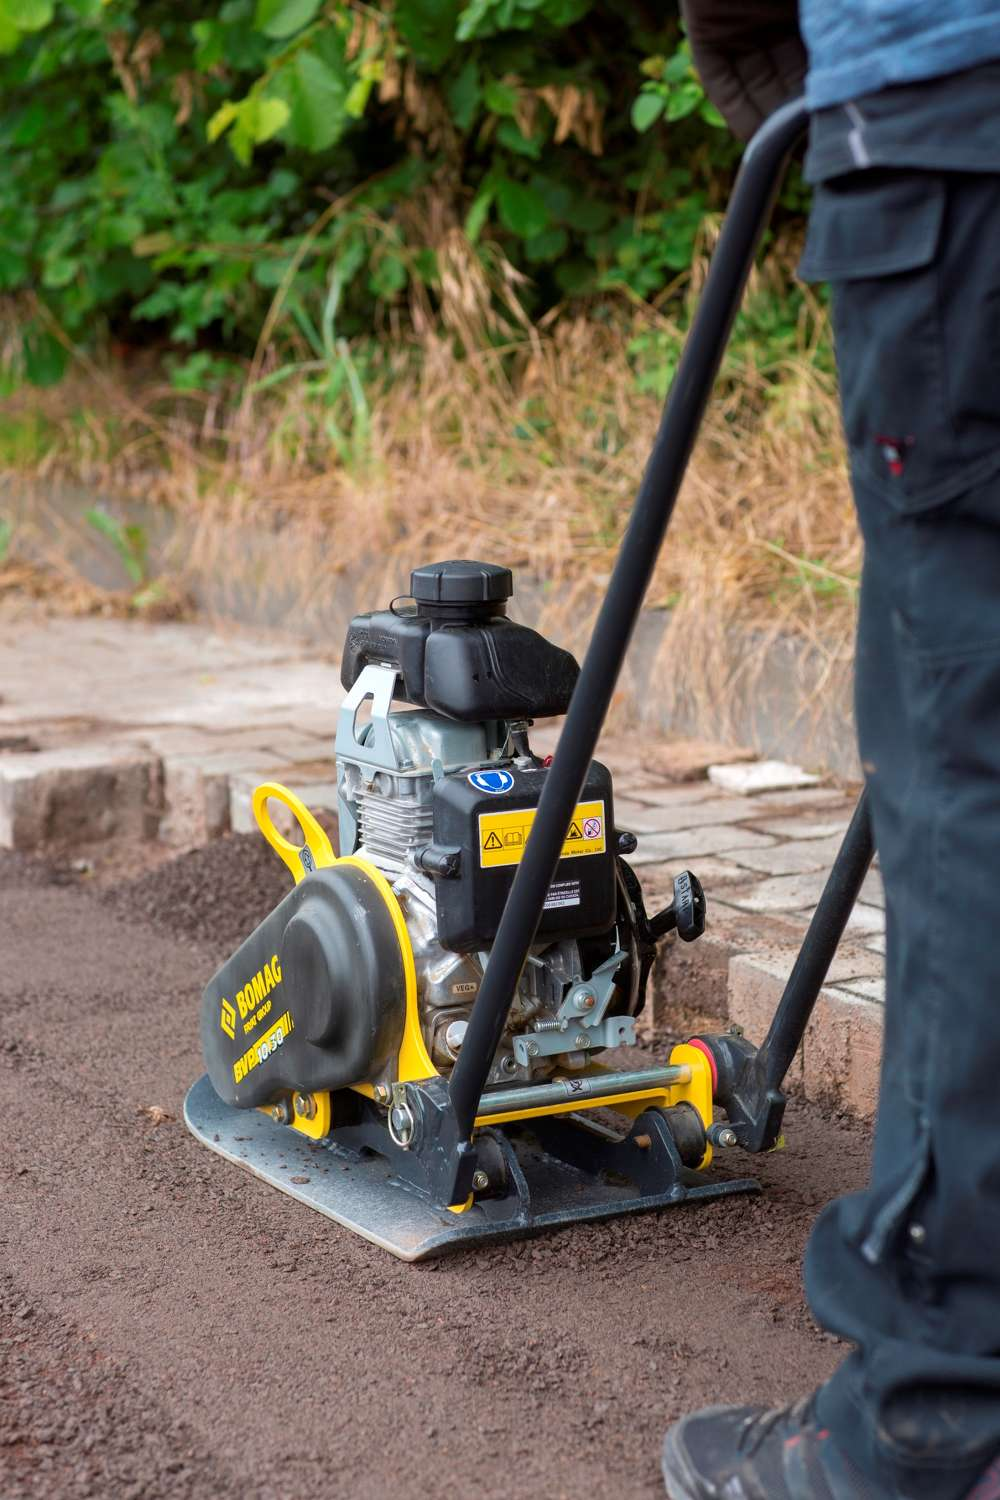 Bomag reports that their single direction vibratory plate compactors are great tools for contractors' day-to-day use in soil and asphalt repair and maintenance compaction applications.